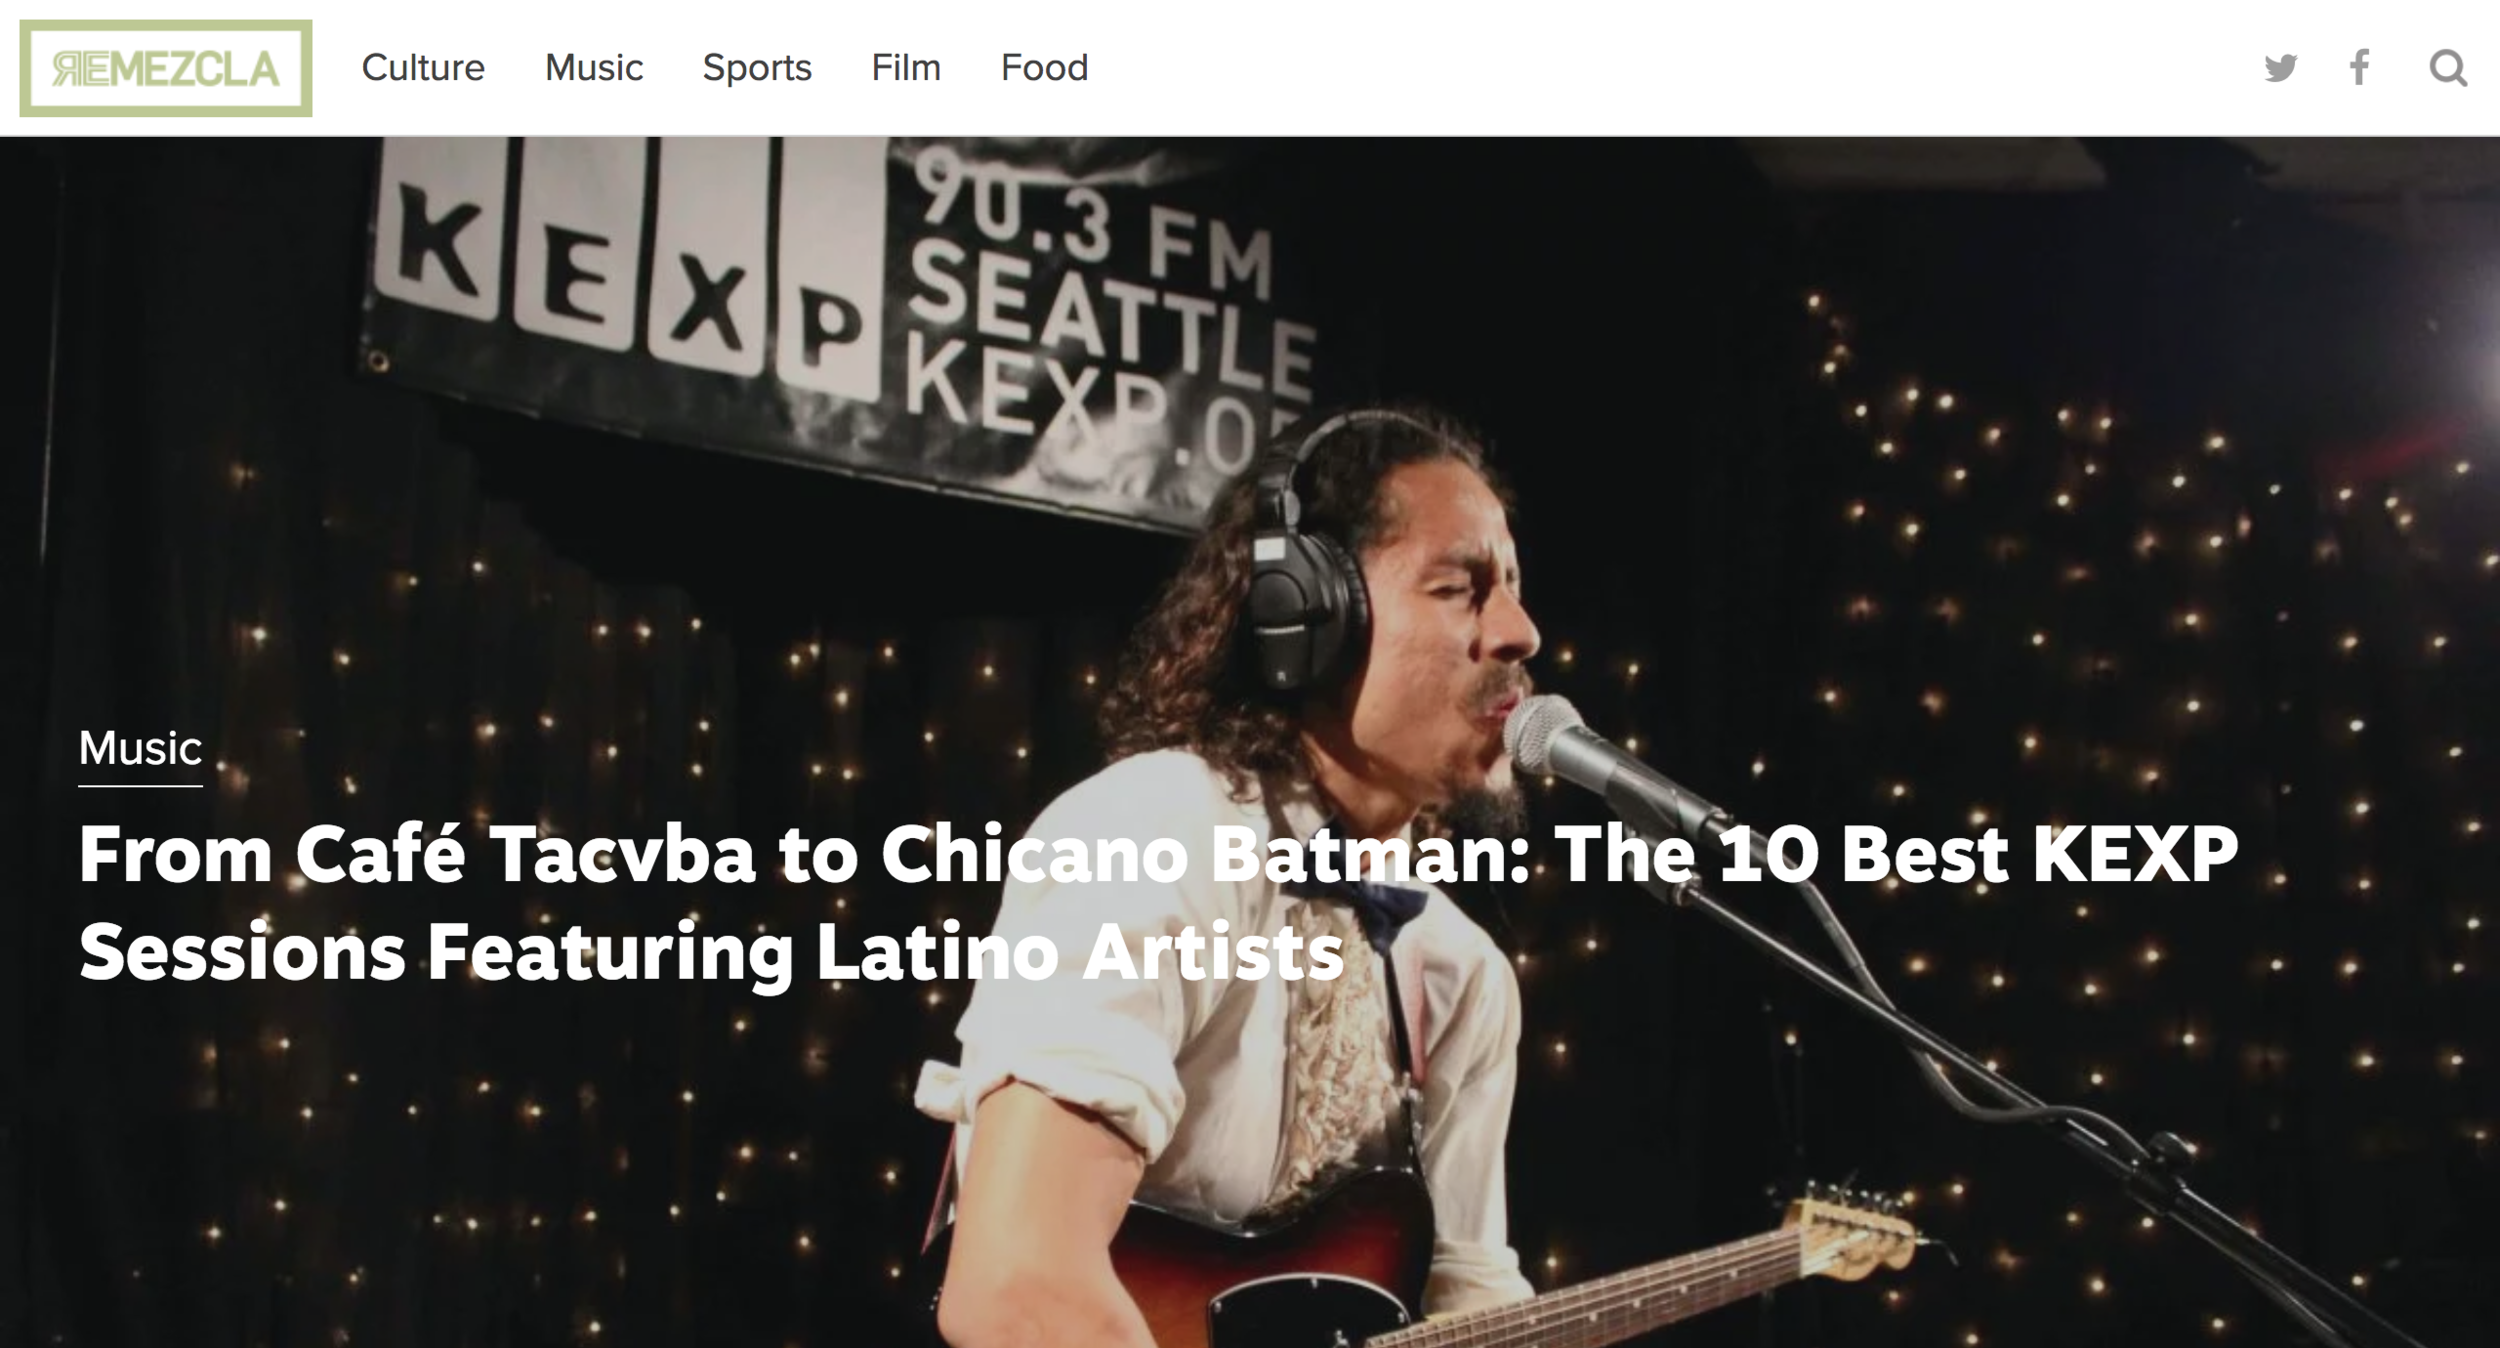 "REMEZCLA - My KEXP show made it on Remezcla's ""Top 10 Best KEXP Sessions featuring Latino Artists"". Truly humbled and speechless to be considered alongside many artists that I admire Helado Negro, Balún, Café Tacvba, Rubio, Sagán…"